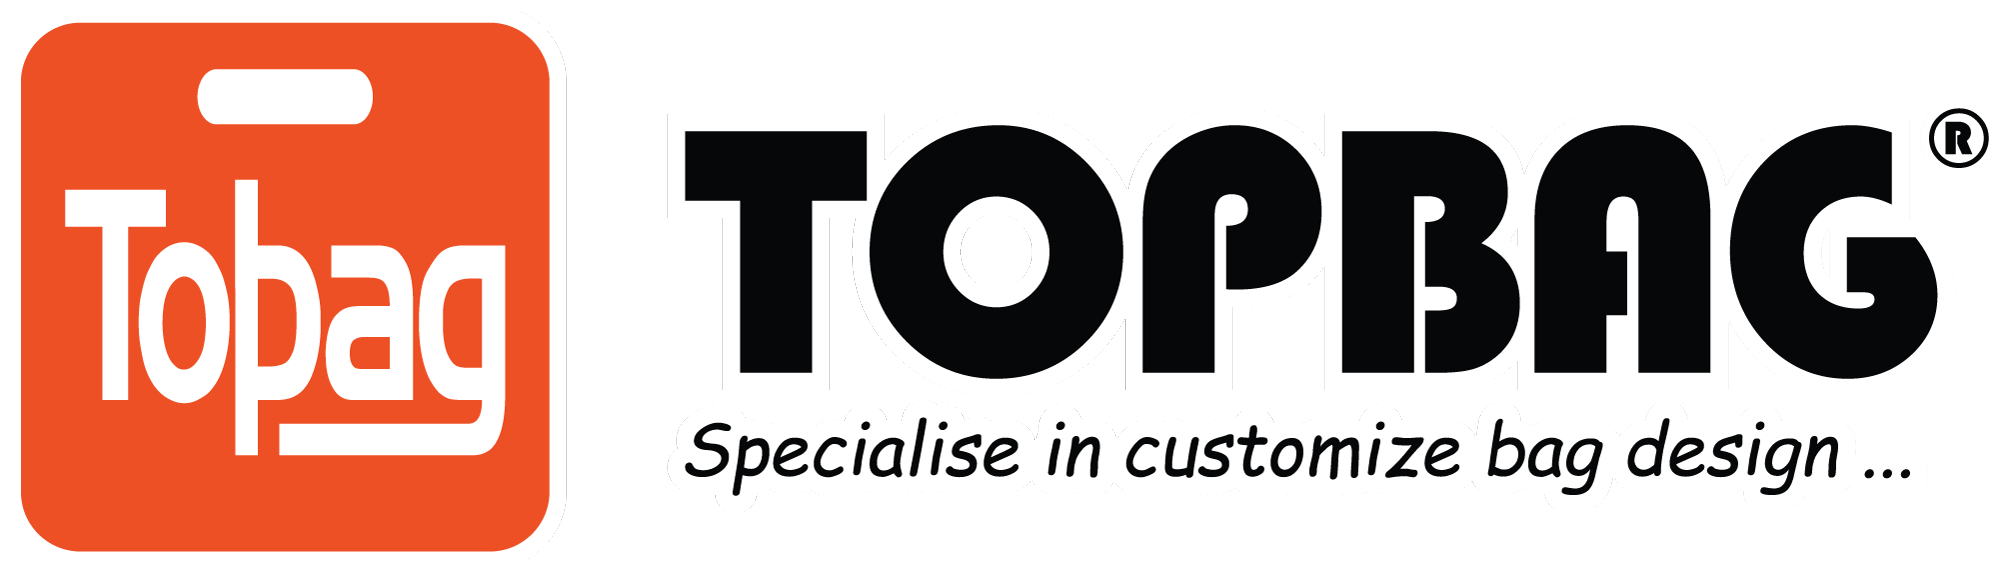 TopBag | Bag | Custom Bags | Supplier of bag | Bag Manufacturer Malaysia | Gift Bag | Luggage Bag